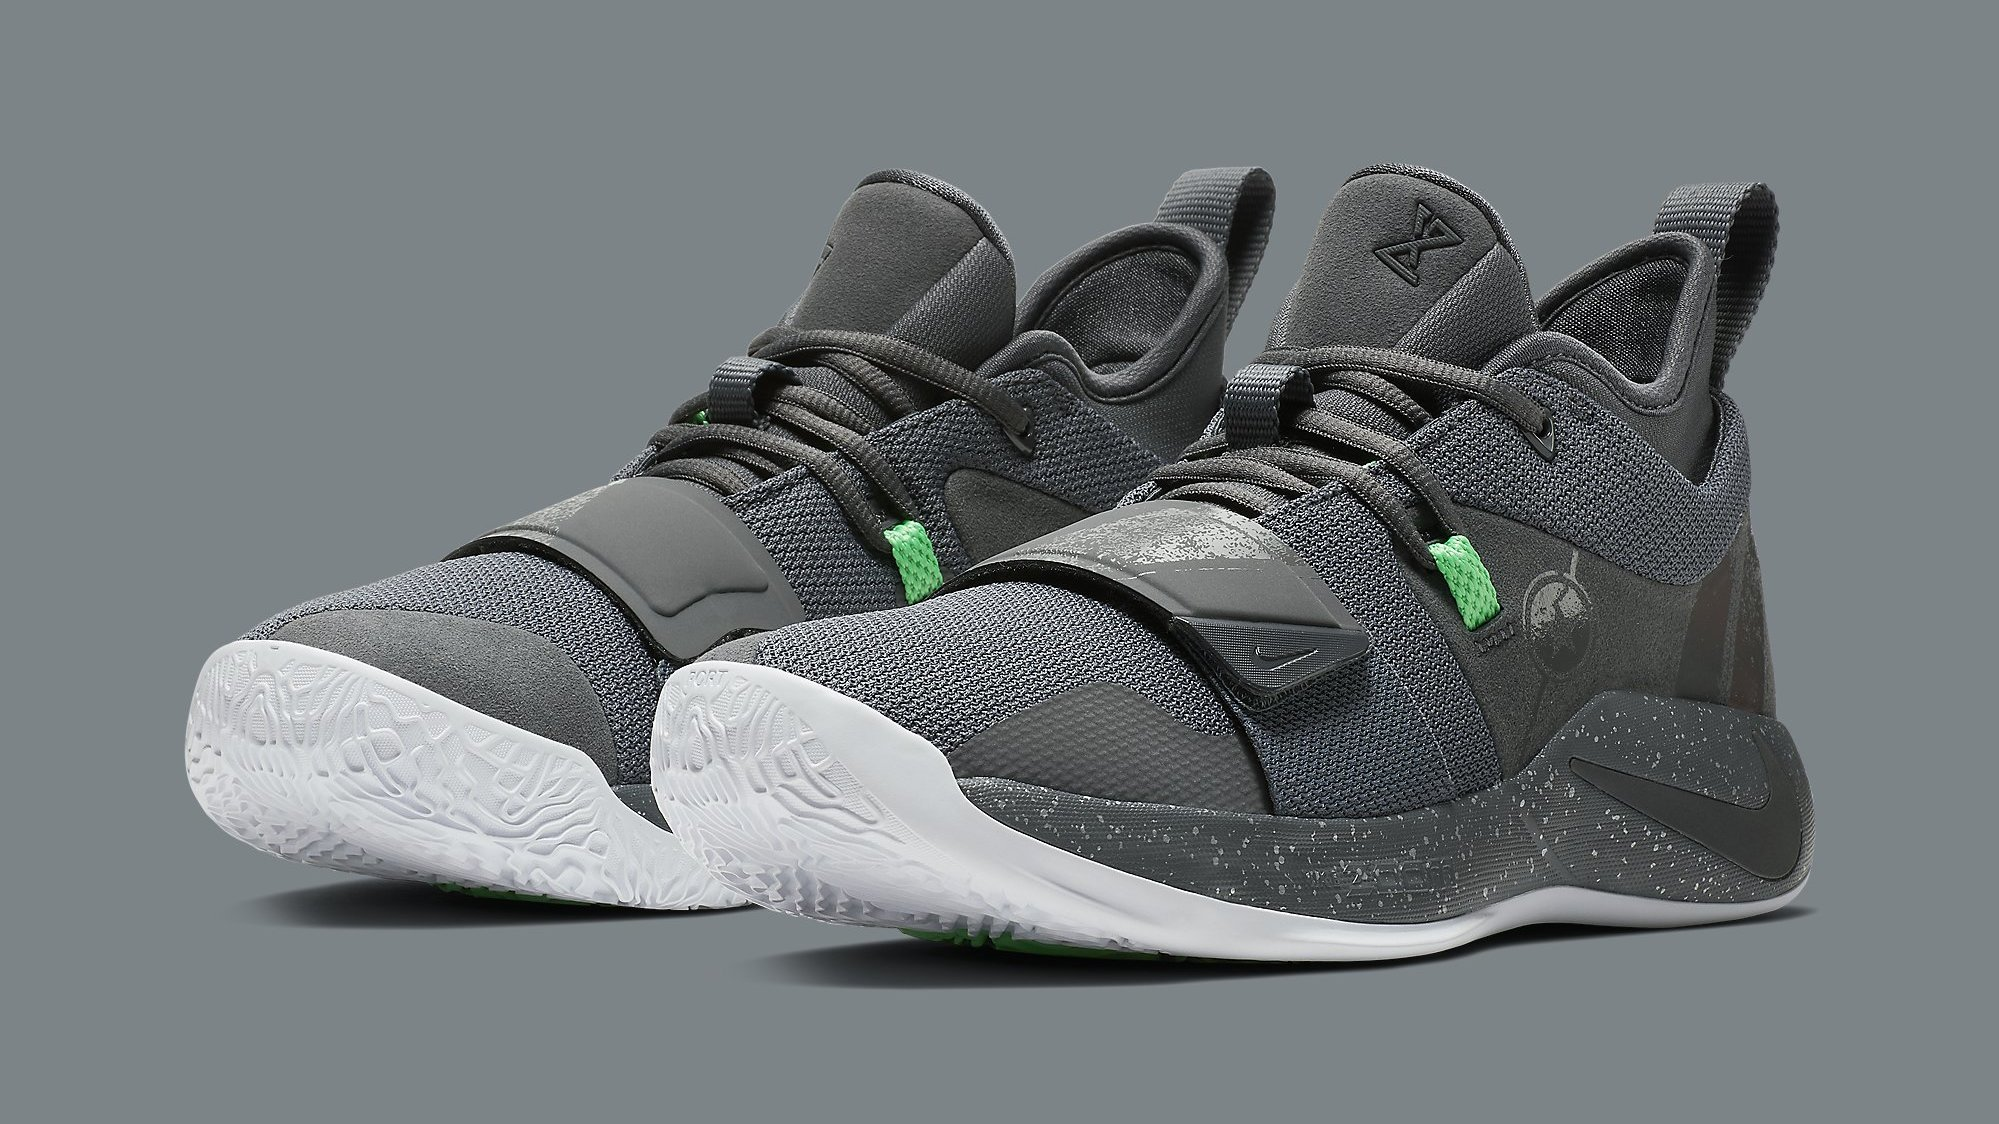 new product 10a90 8db5f Nike PG 2.5 Grey Green Release Date BQ8452-007   Sole Collector